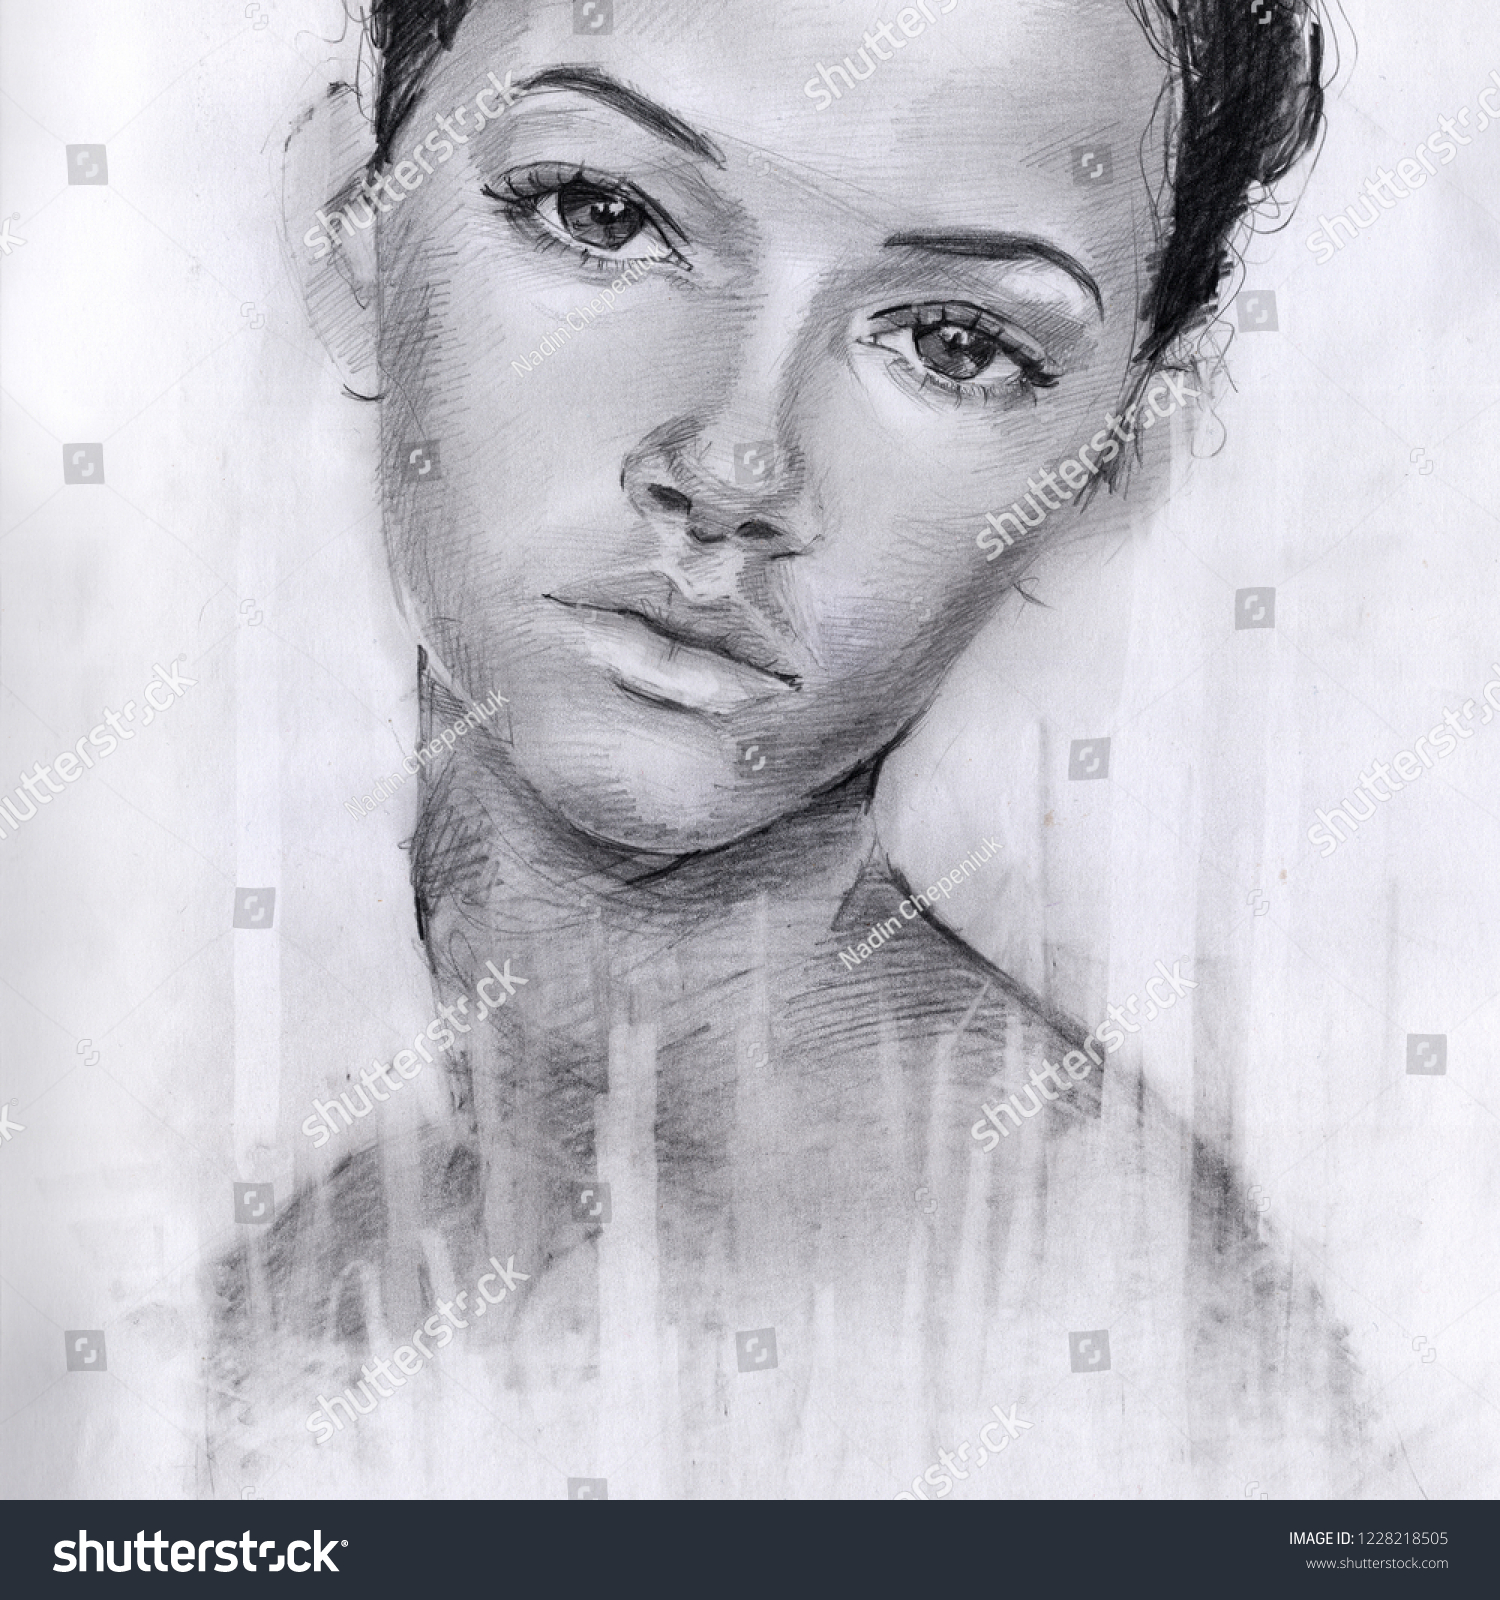 Portrait of a girl in pencil sketch